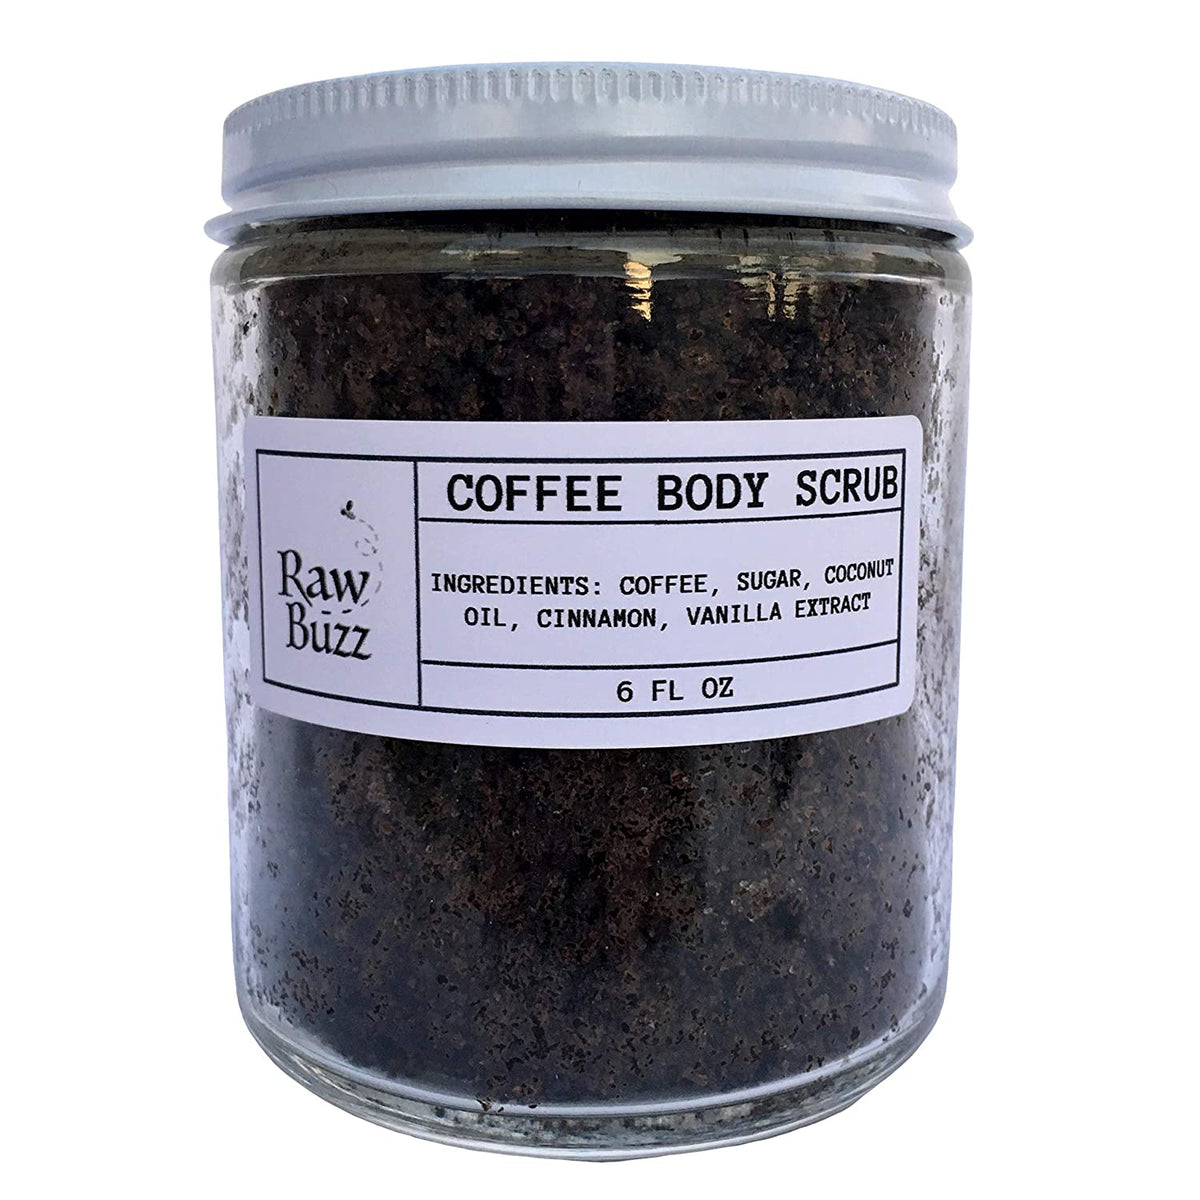 Raw Buzz Coffee Body Scrub